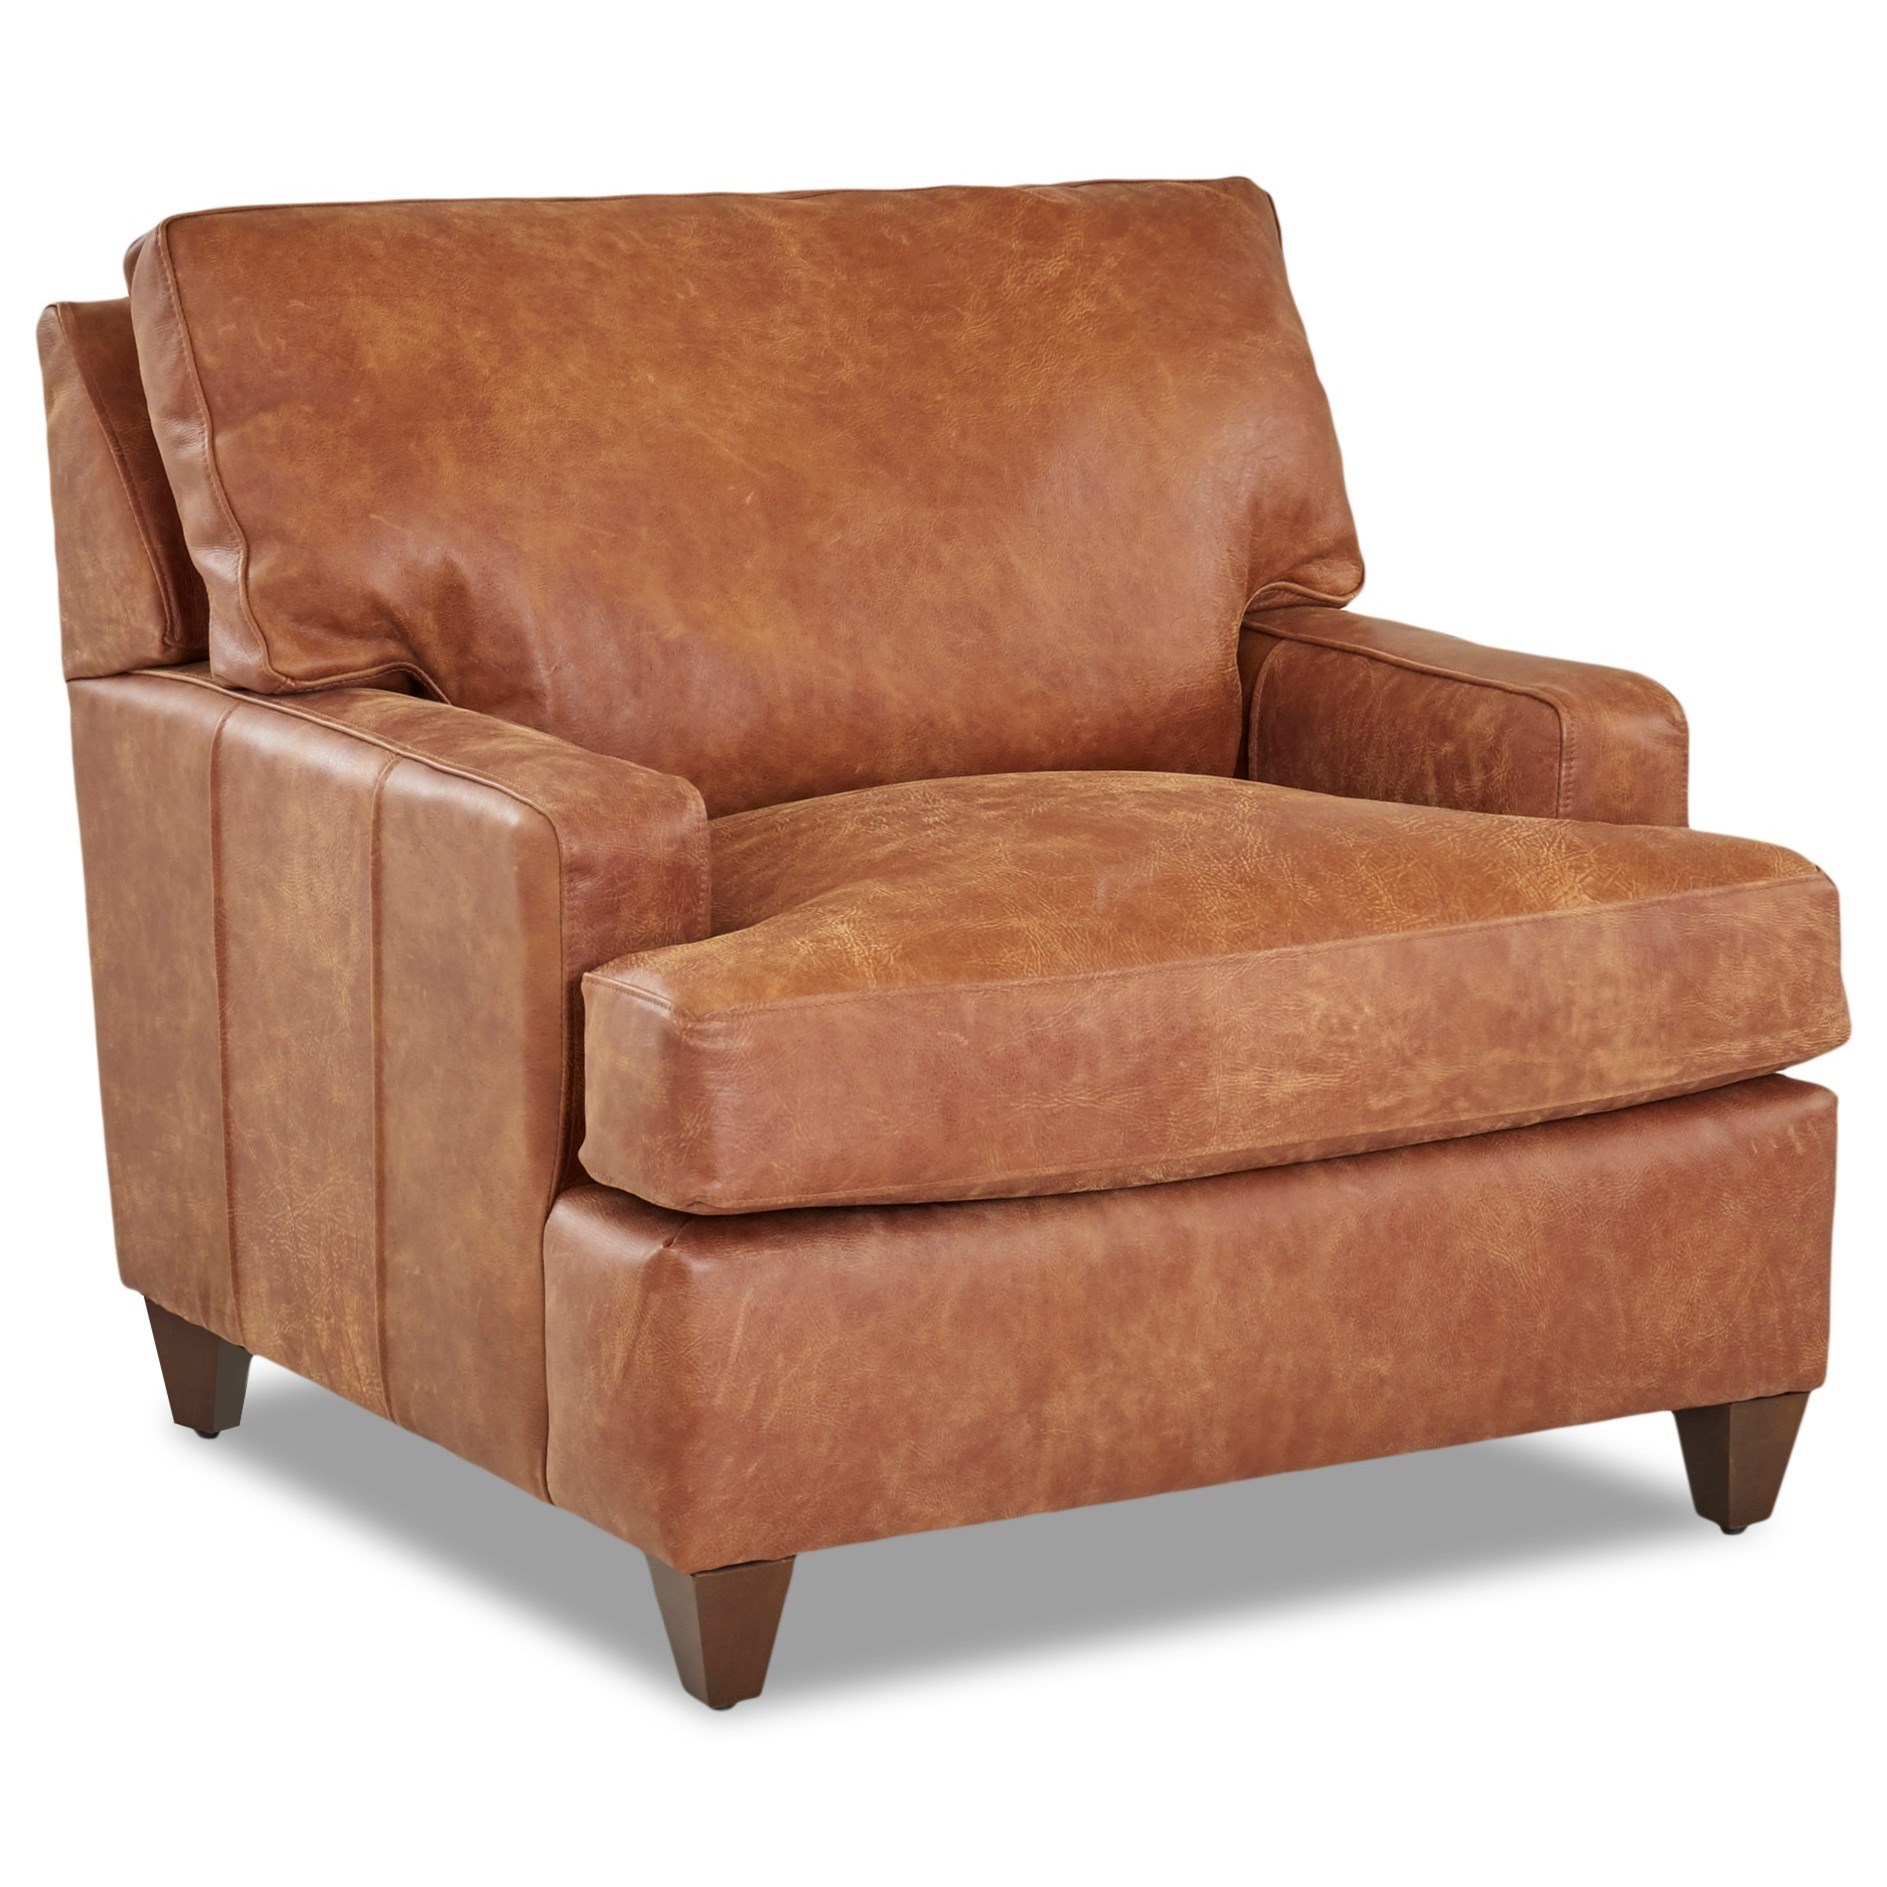 Image of: Klaussner Cassio Contemporary Leather Chair Wayside Furniture Upholstered Chairs